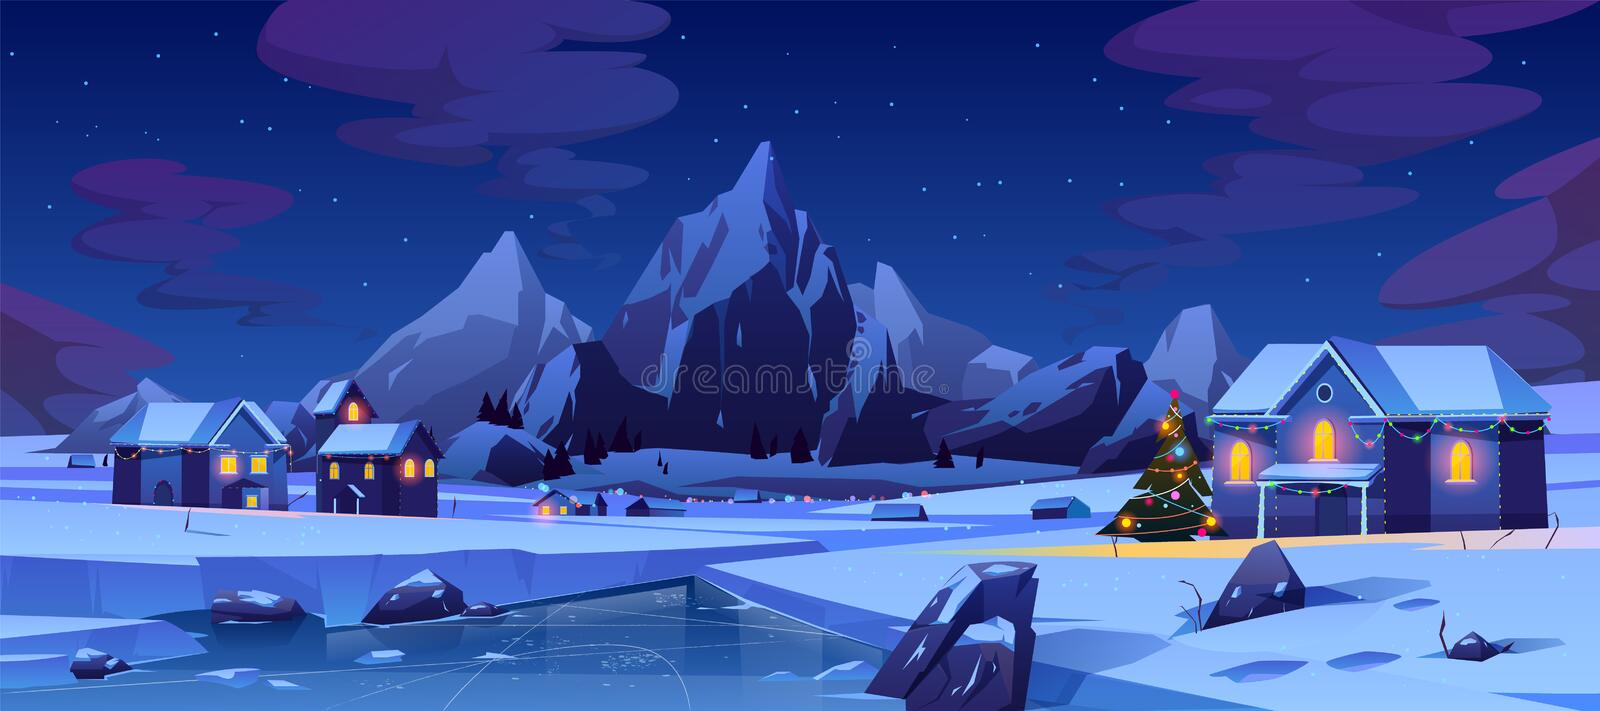 Christmas night in mountain city or Canada, xmas. Christmas night in mountain city or Canada. Winter landscape with houses or chalet glowing with colorful lights vector illustration